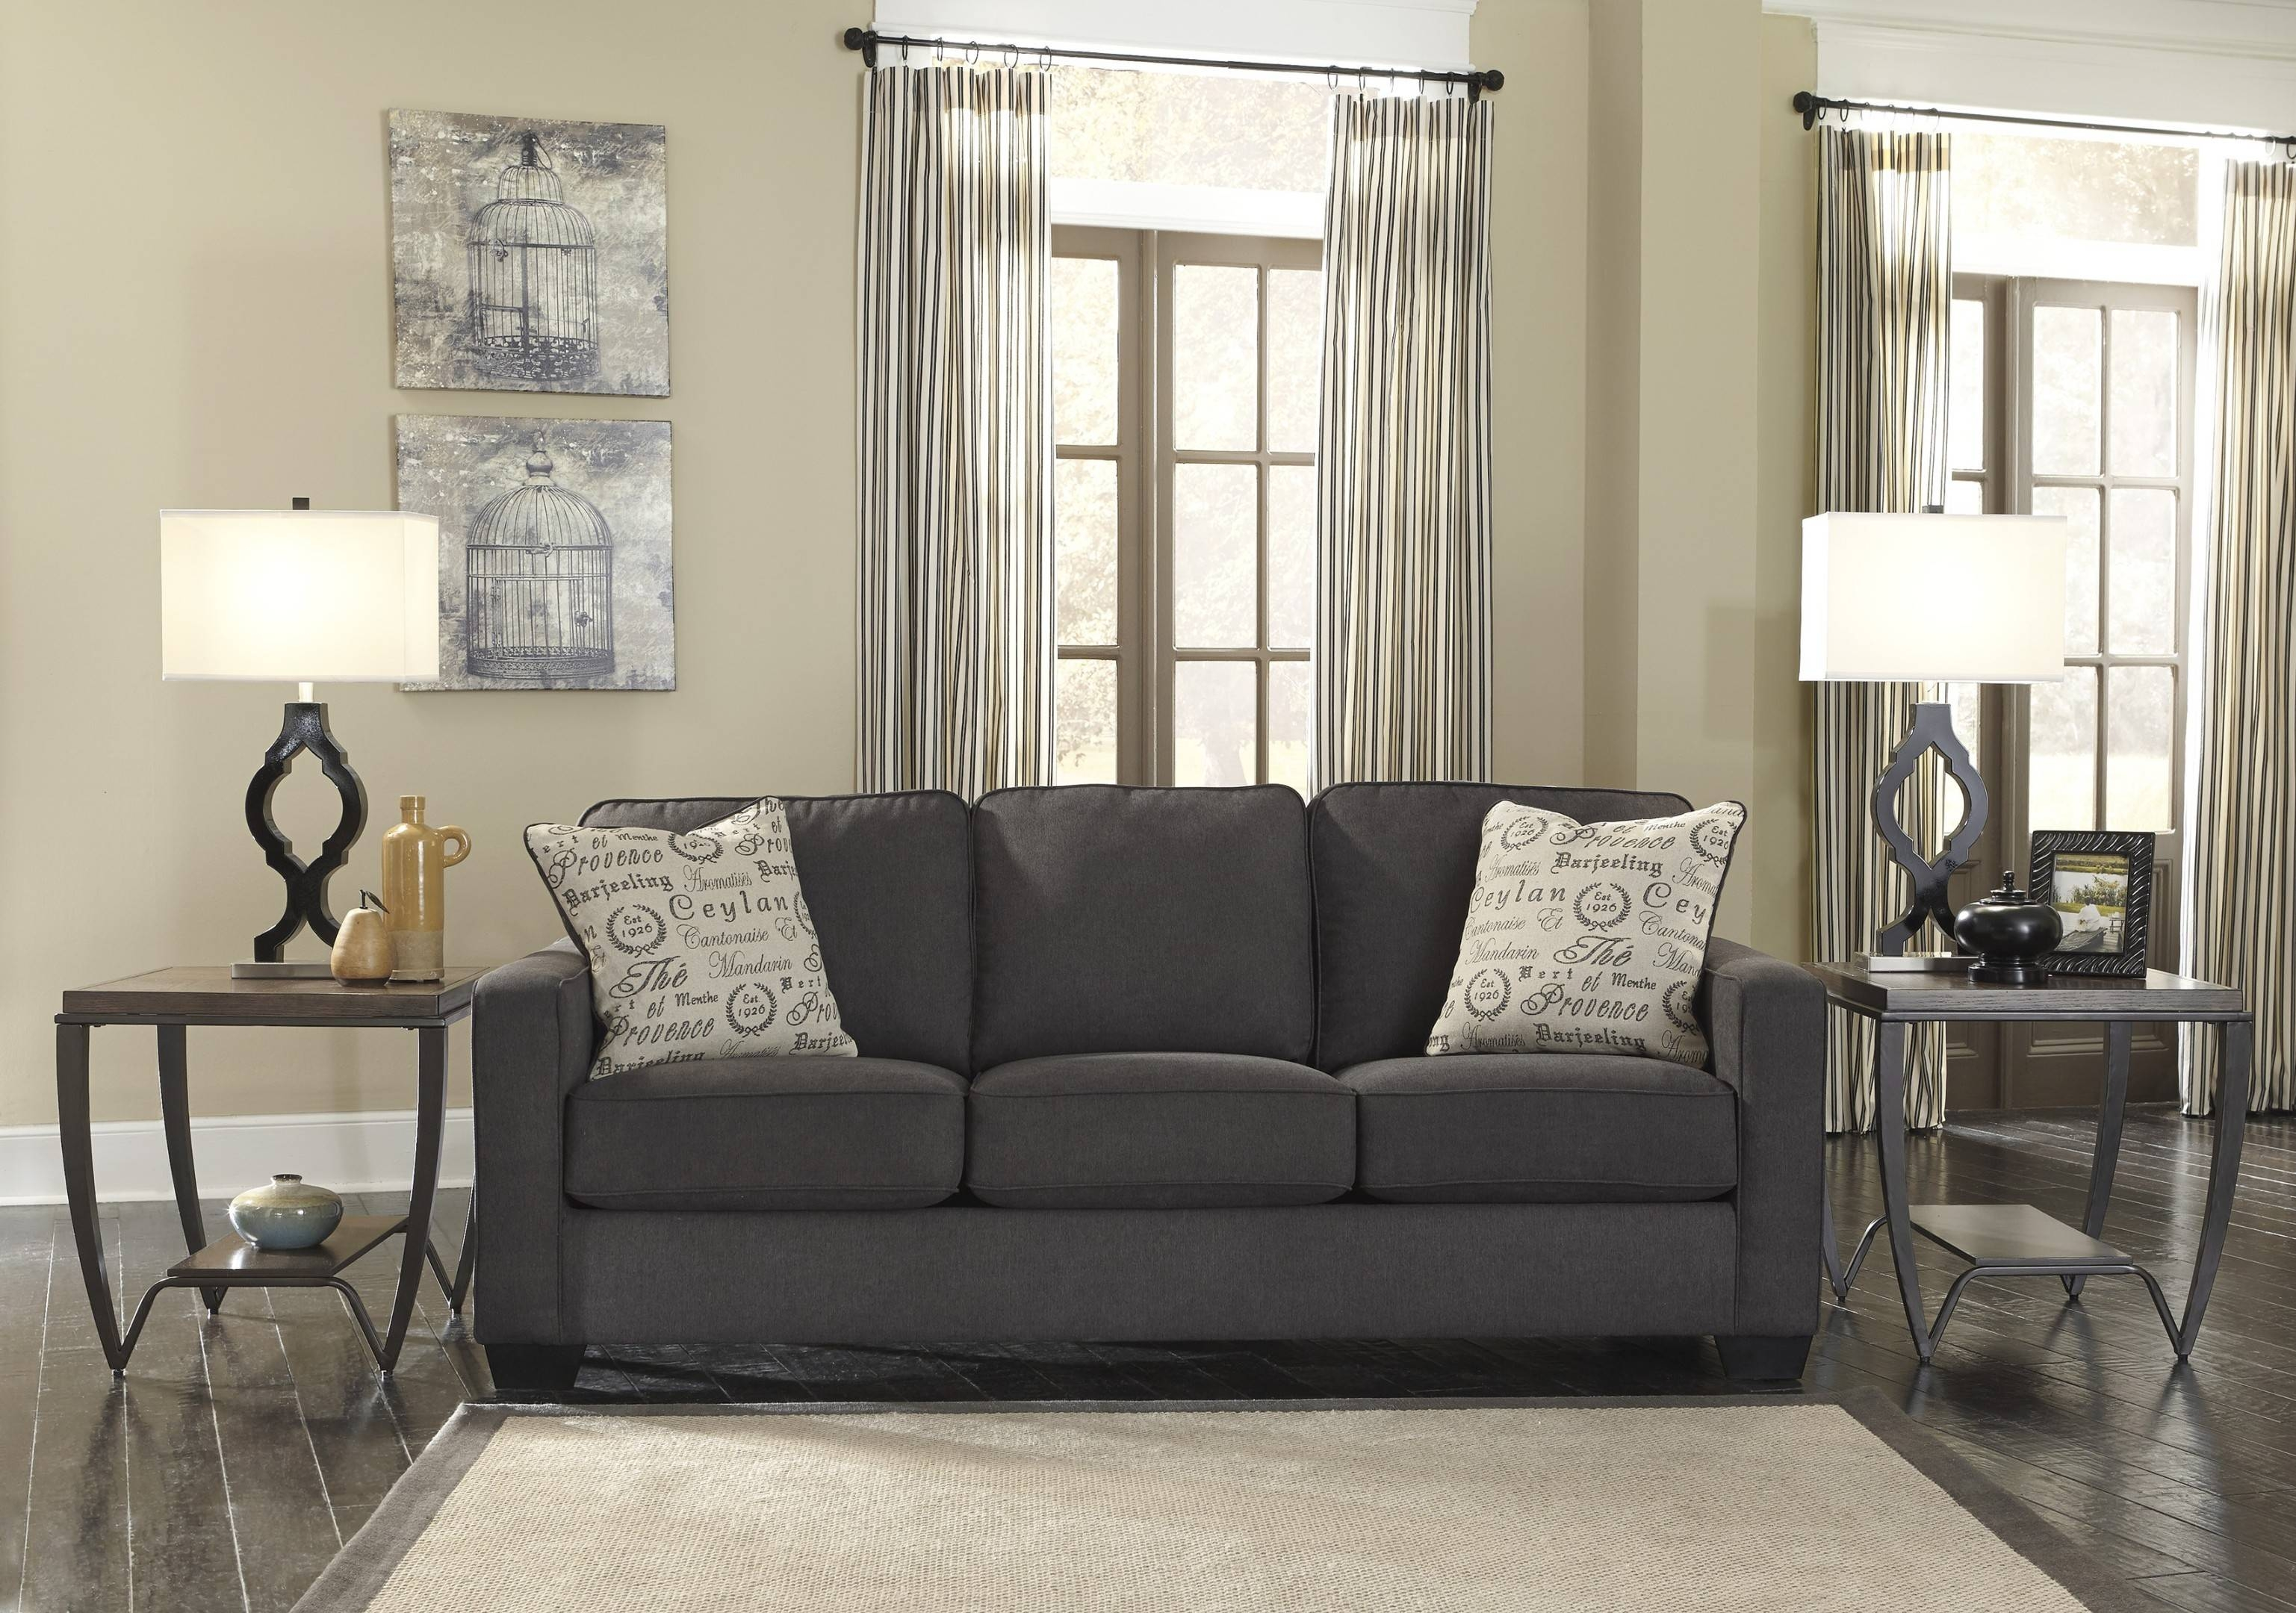 Living Room Grey Sofa Ideas With End Table Plus Lamp And Cream pertaining to Living Room With Grey Sofas (Image 13 of 15)